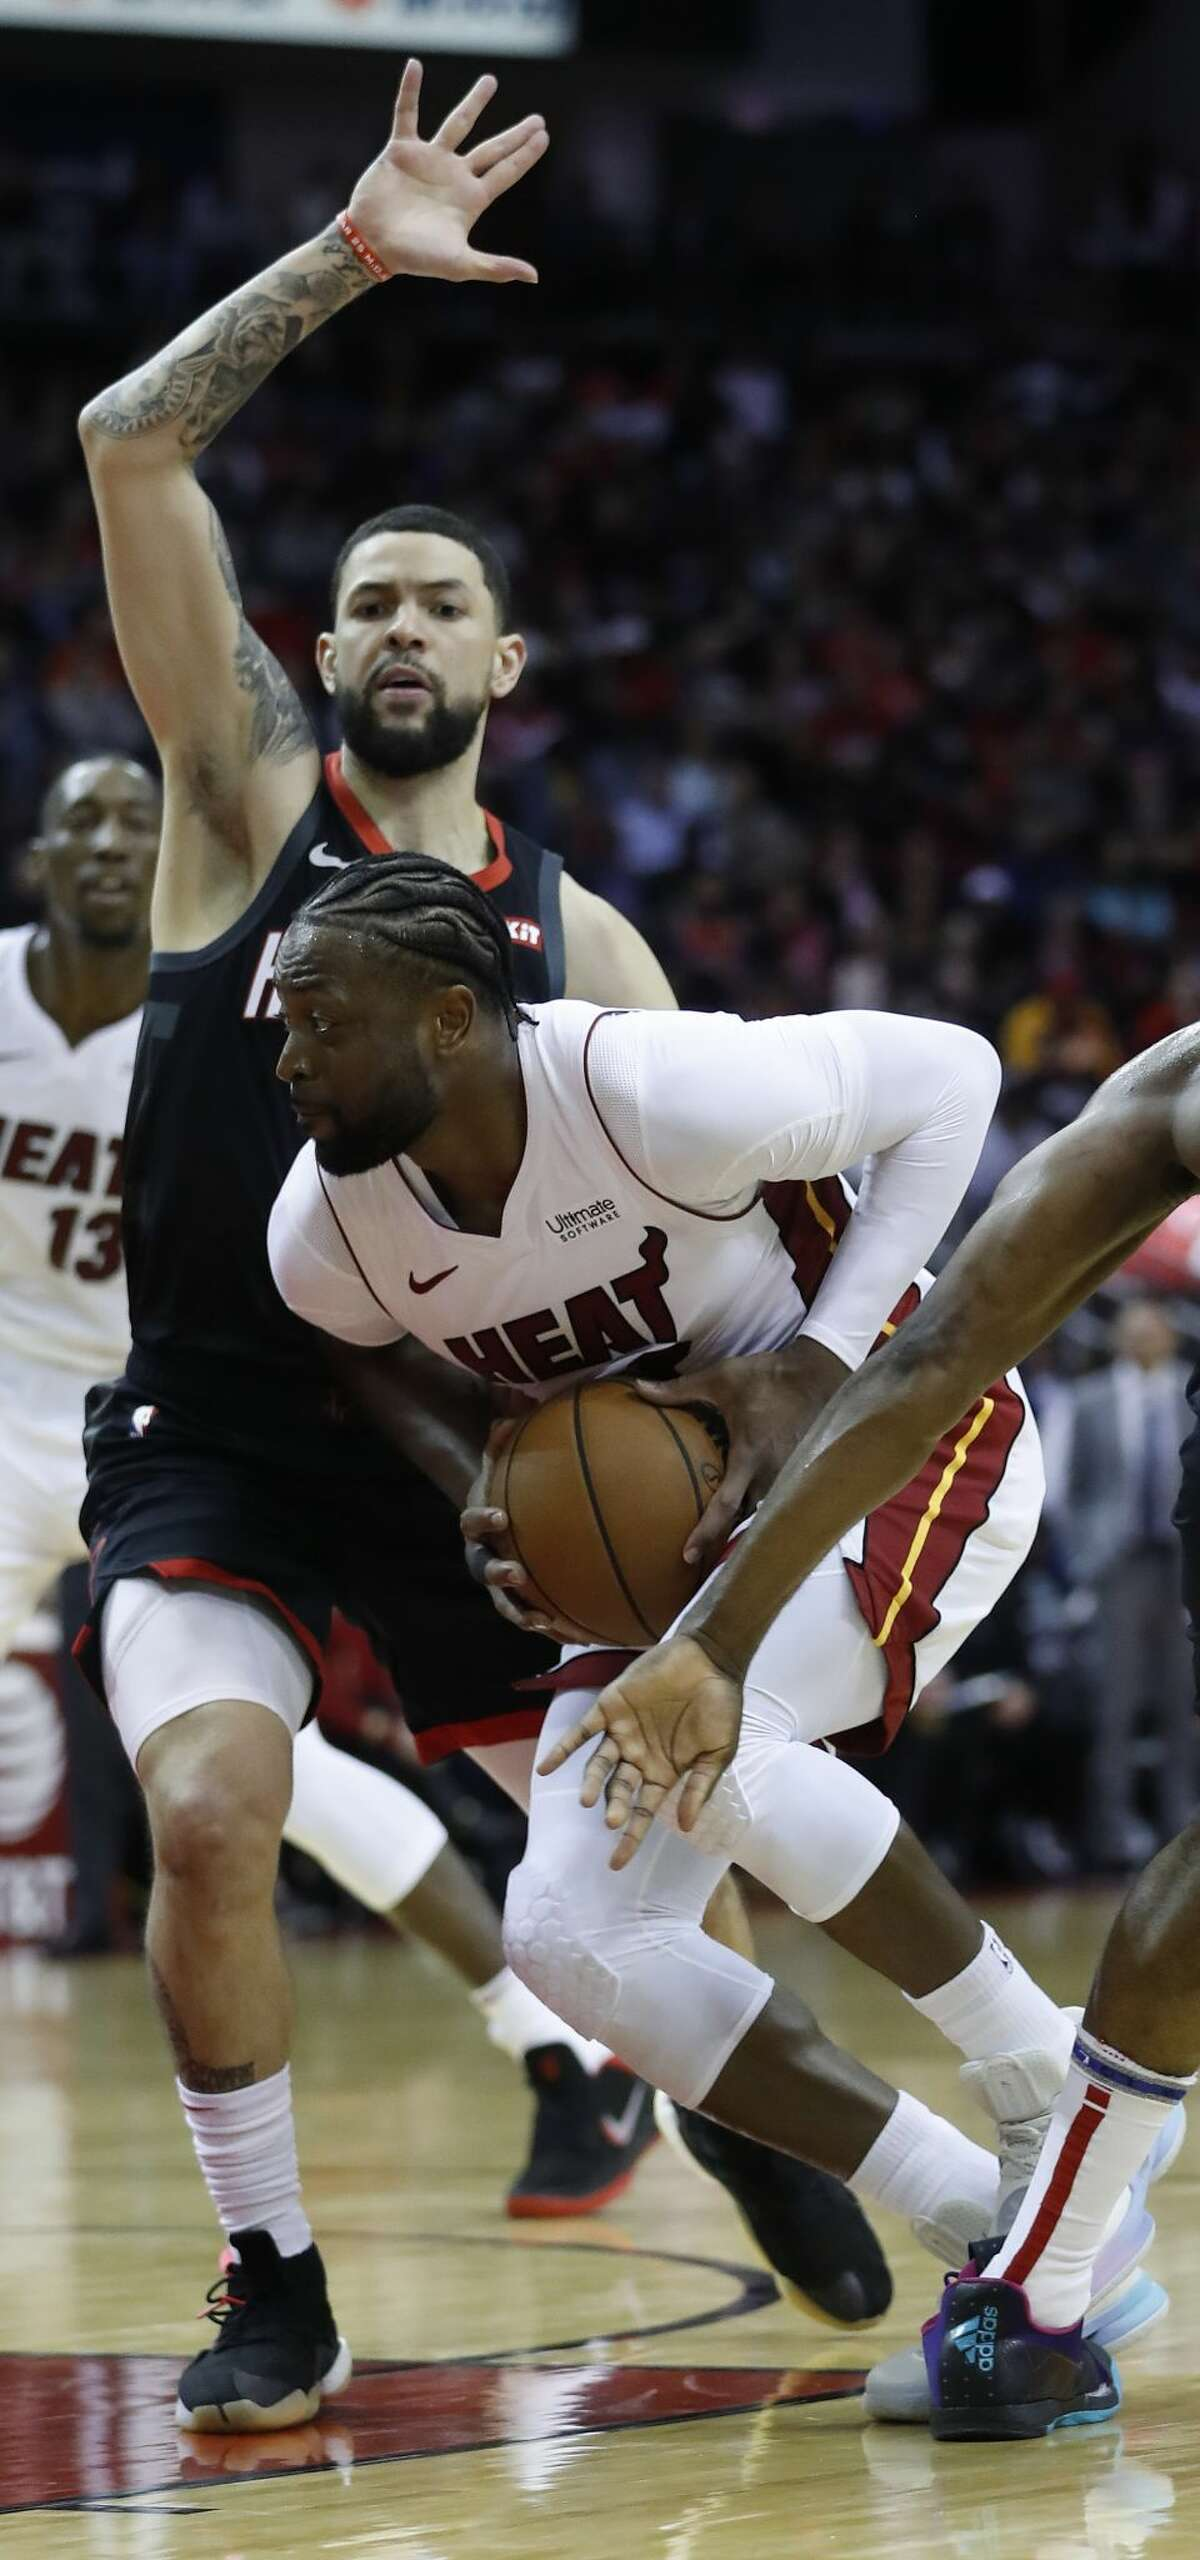 Miami Heat guard Dwyane Wade (3) goes up against Houston Rockets guard Austin Rivers (25) under the basket during the second half of an NBA game at Toyota Center, Thursday, Feb. 28, 2019, in Houston.